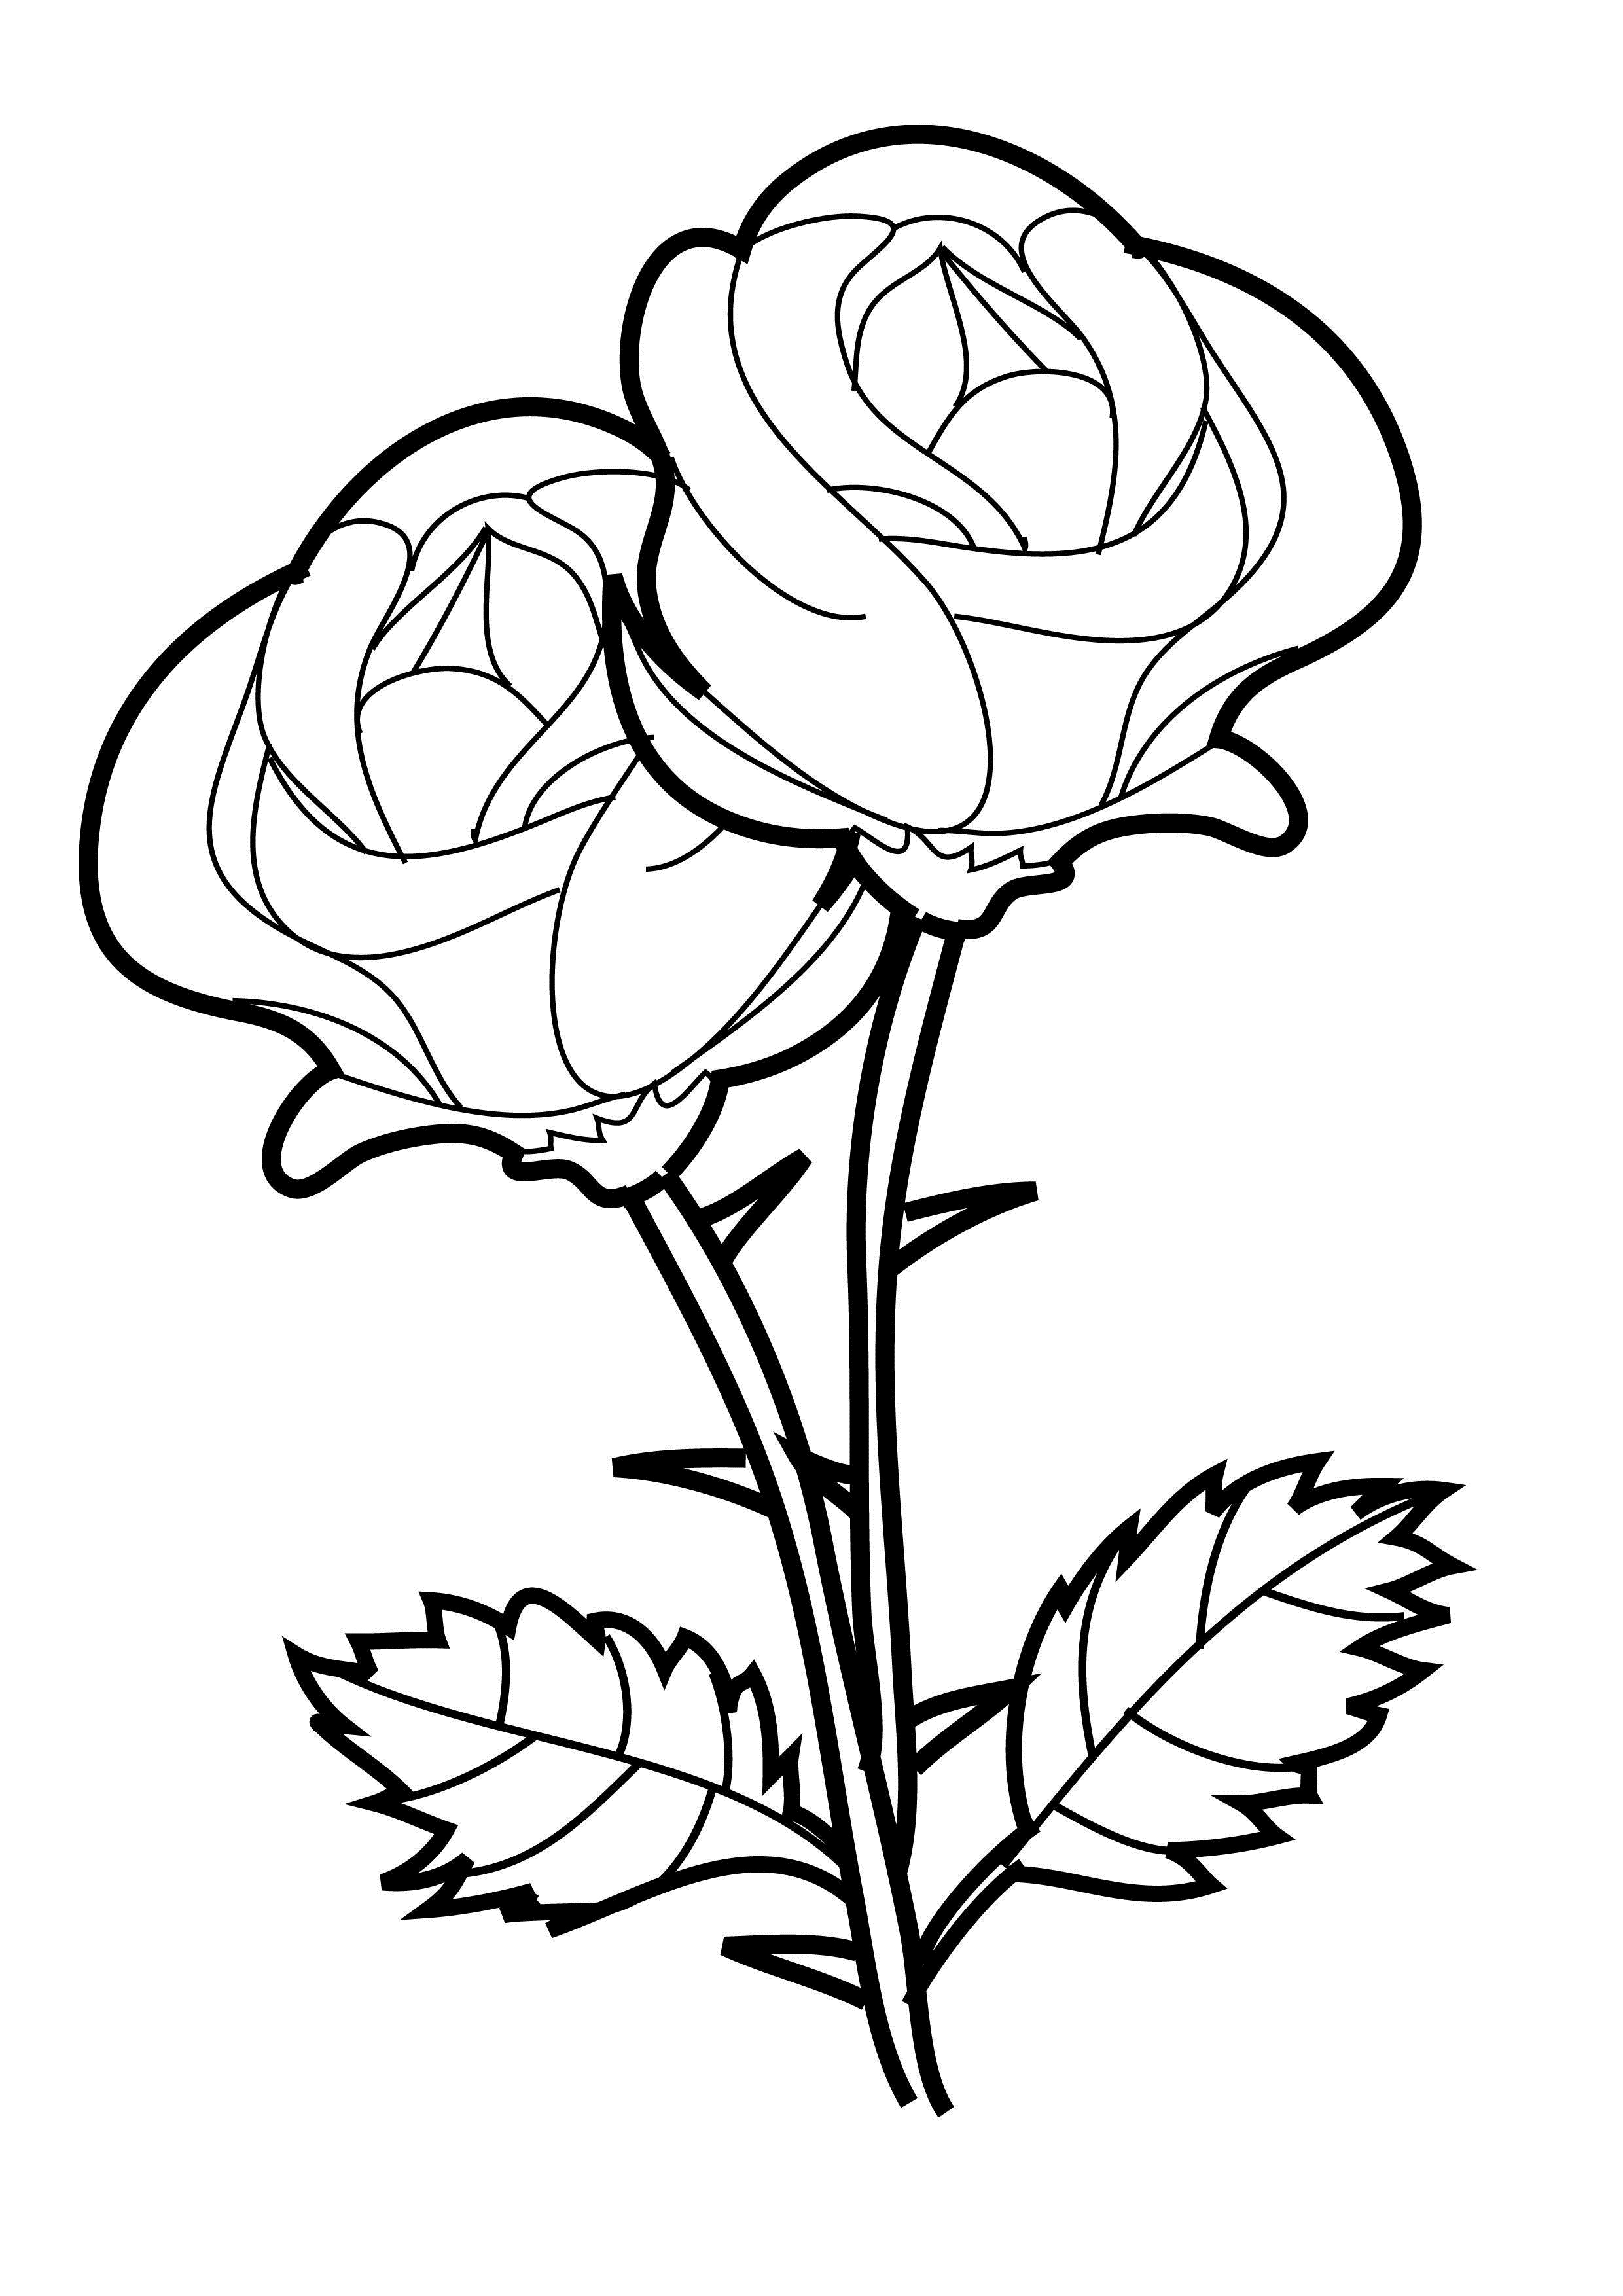 free coloring pages of roses rose coloring page free printable coloring pages pages coloring of free roses